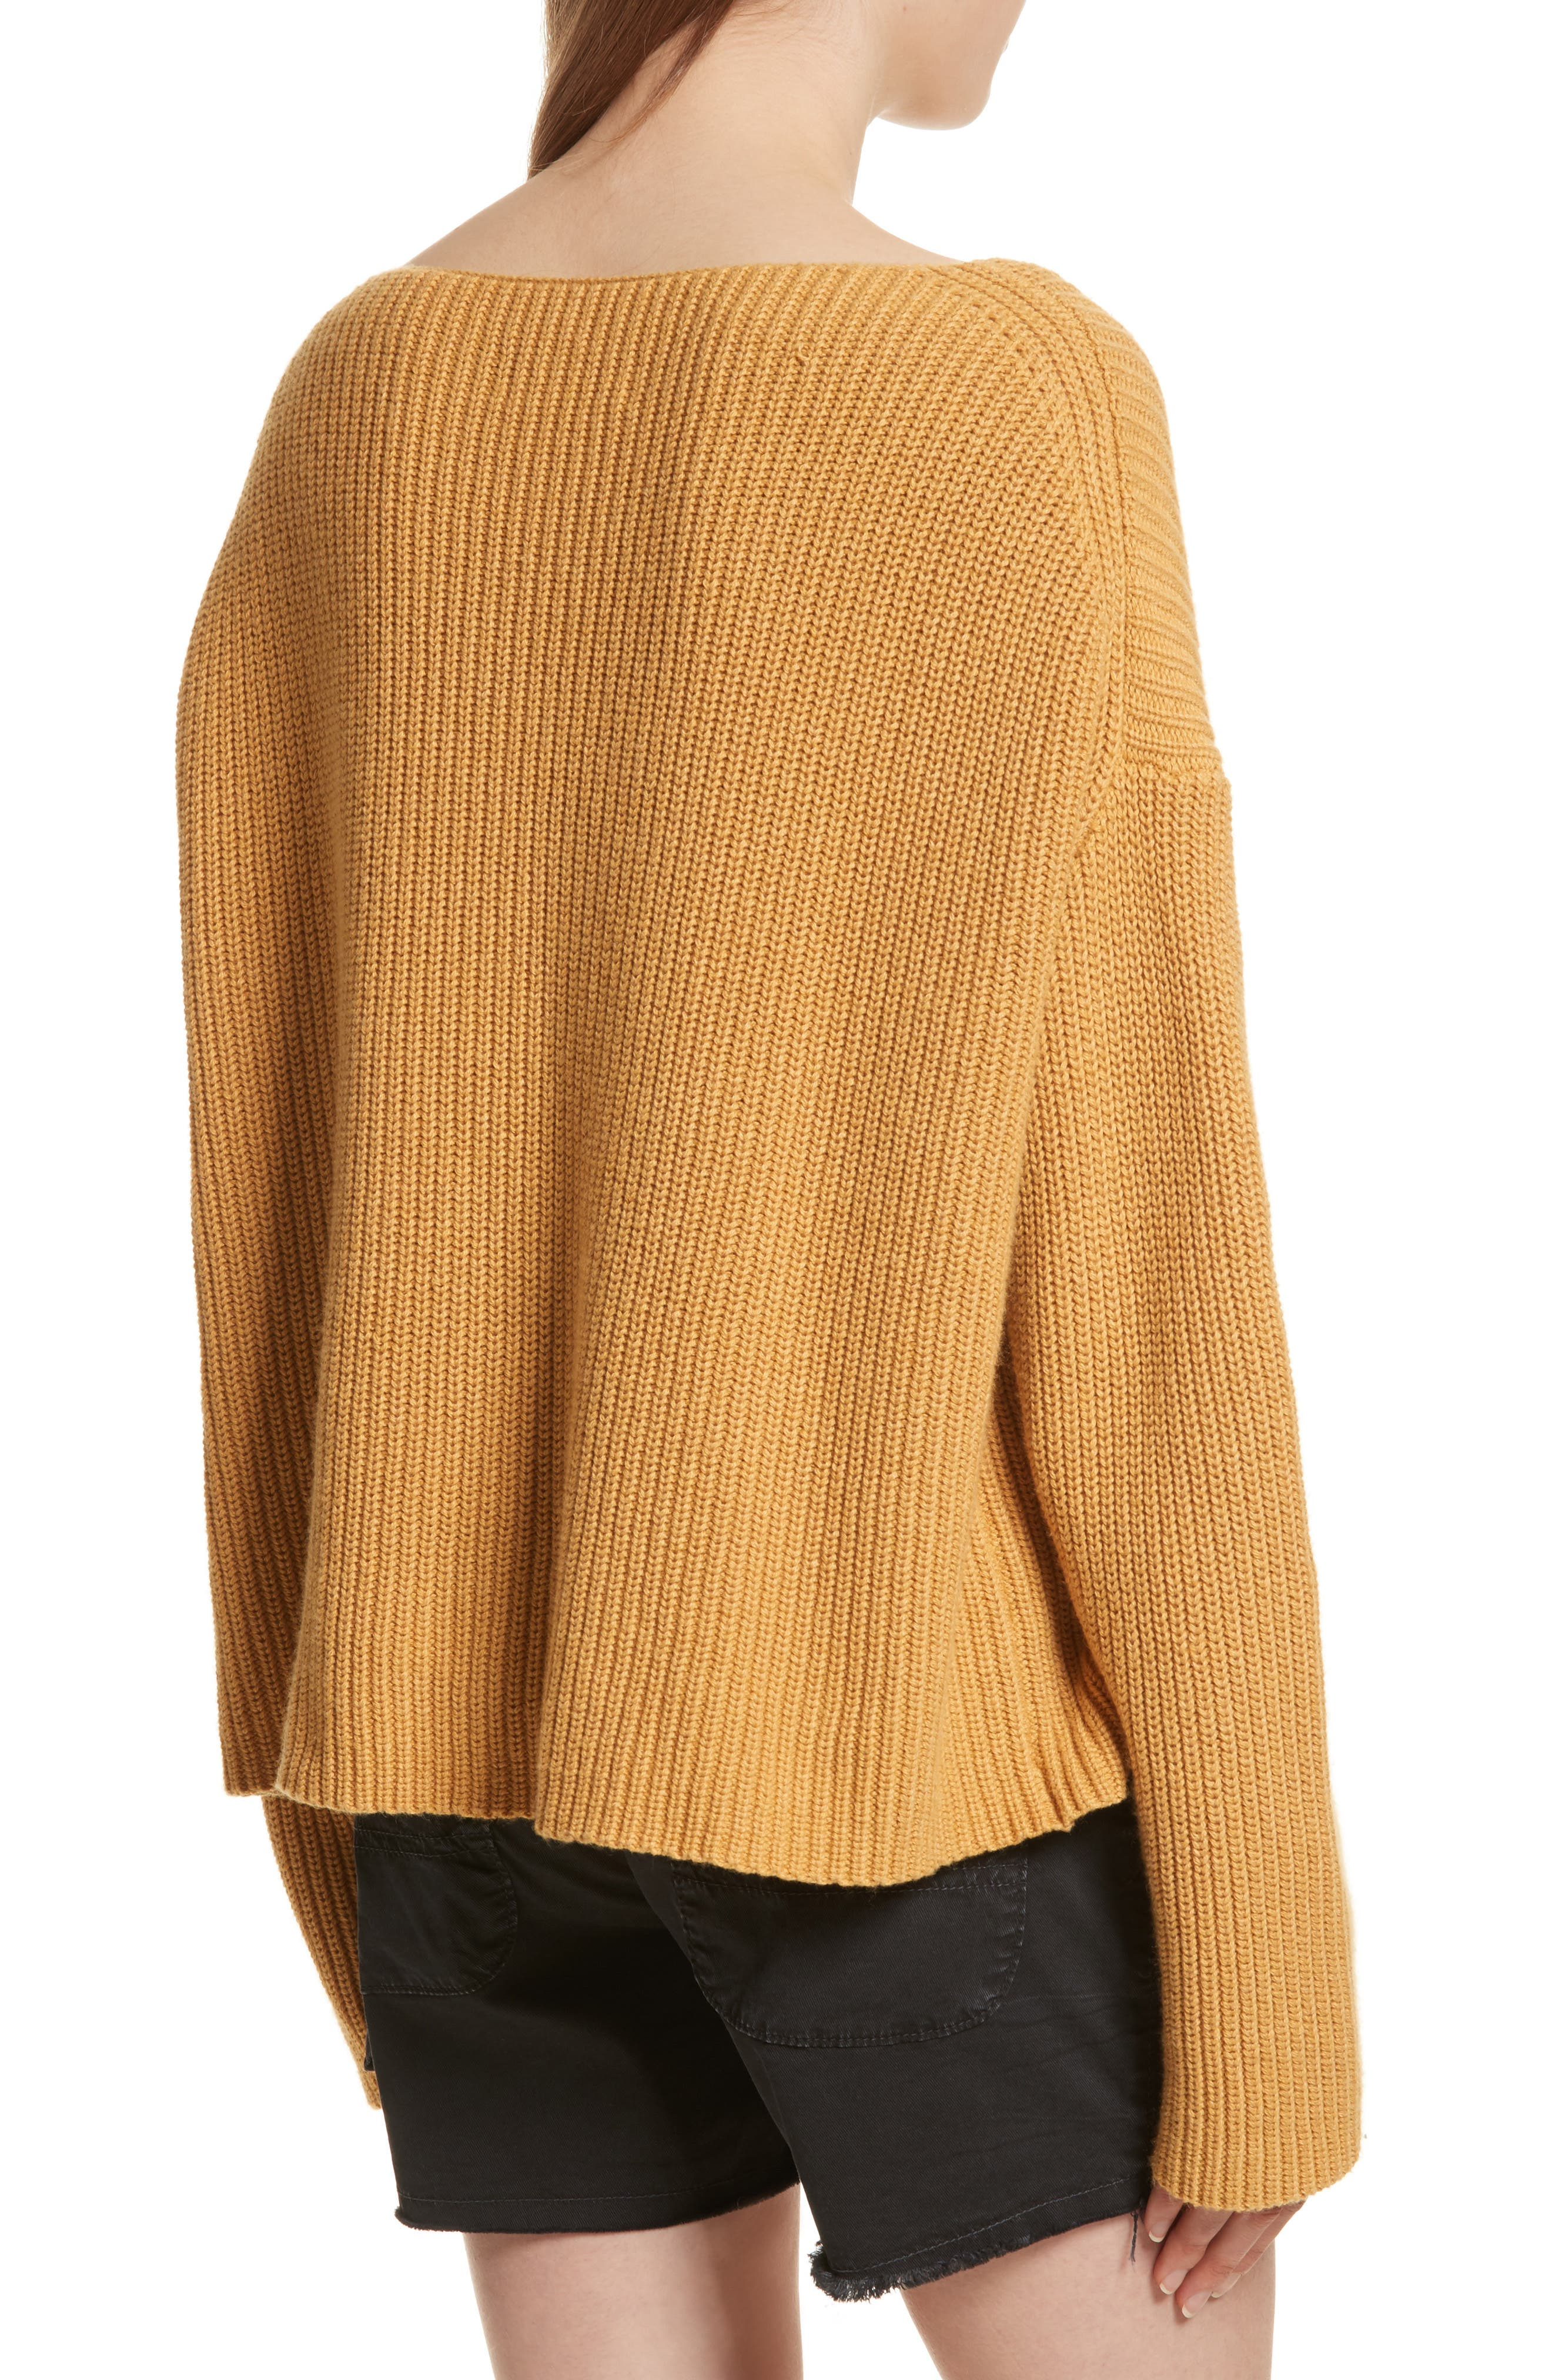 Martindale Ribbed Cotton, Cashmere & Silk Sweater,                             Alternate thumbnail 2, color,                             Mustard